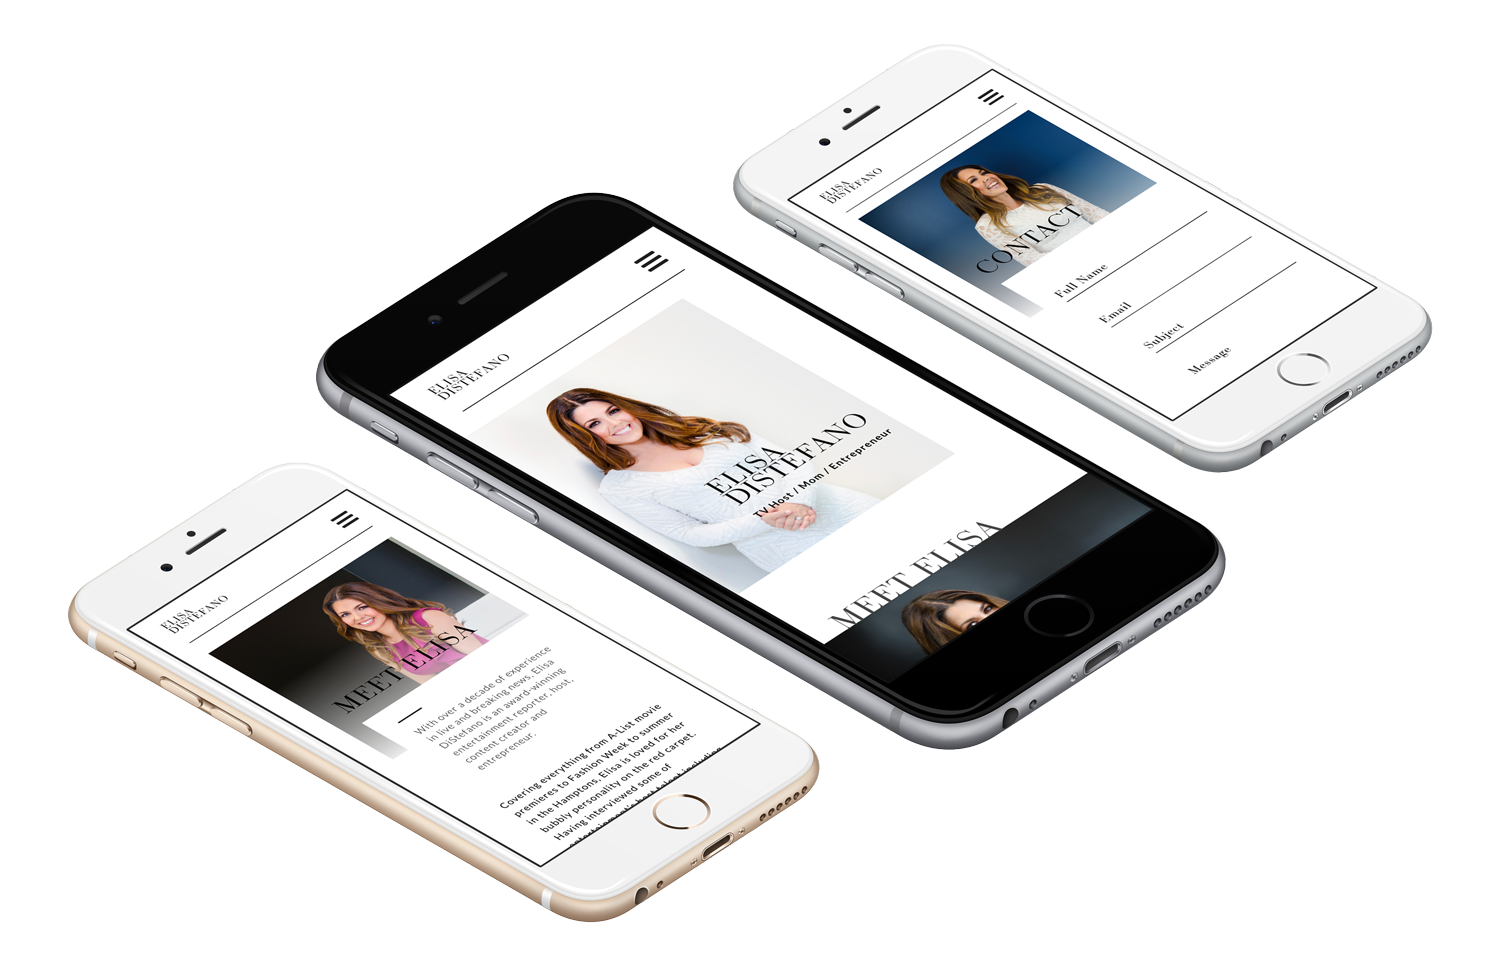 Elisa DiStefano - Celebrity Website on mobile, Branding services, brand identity design, branding and marketing, branding agency